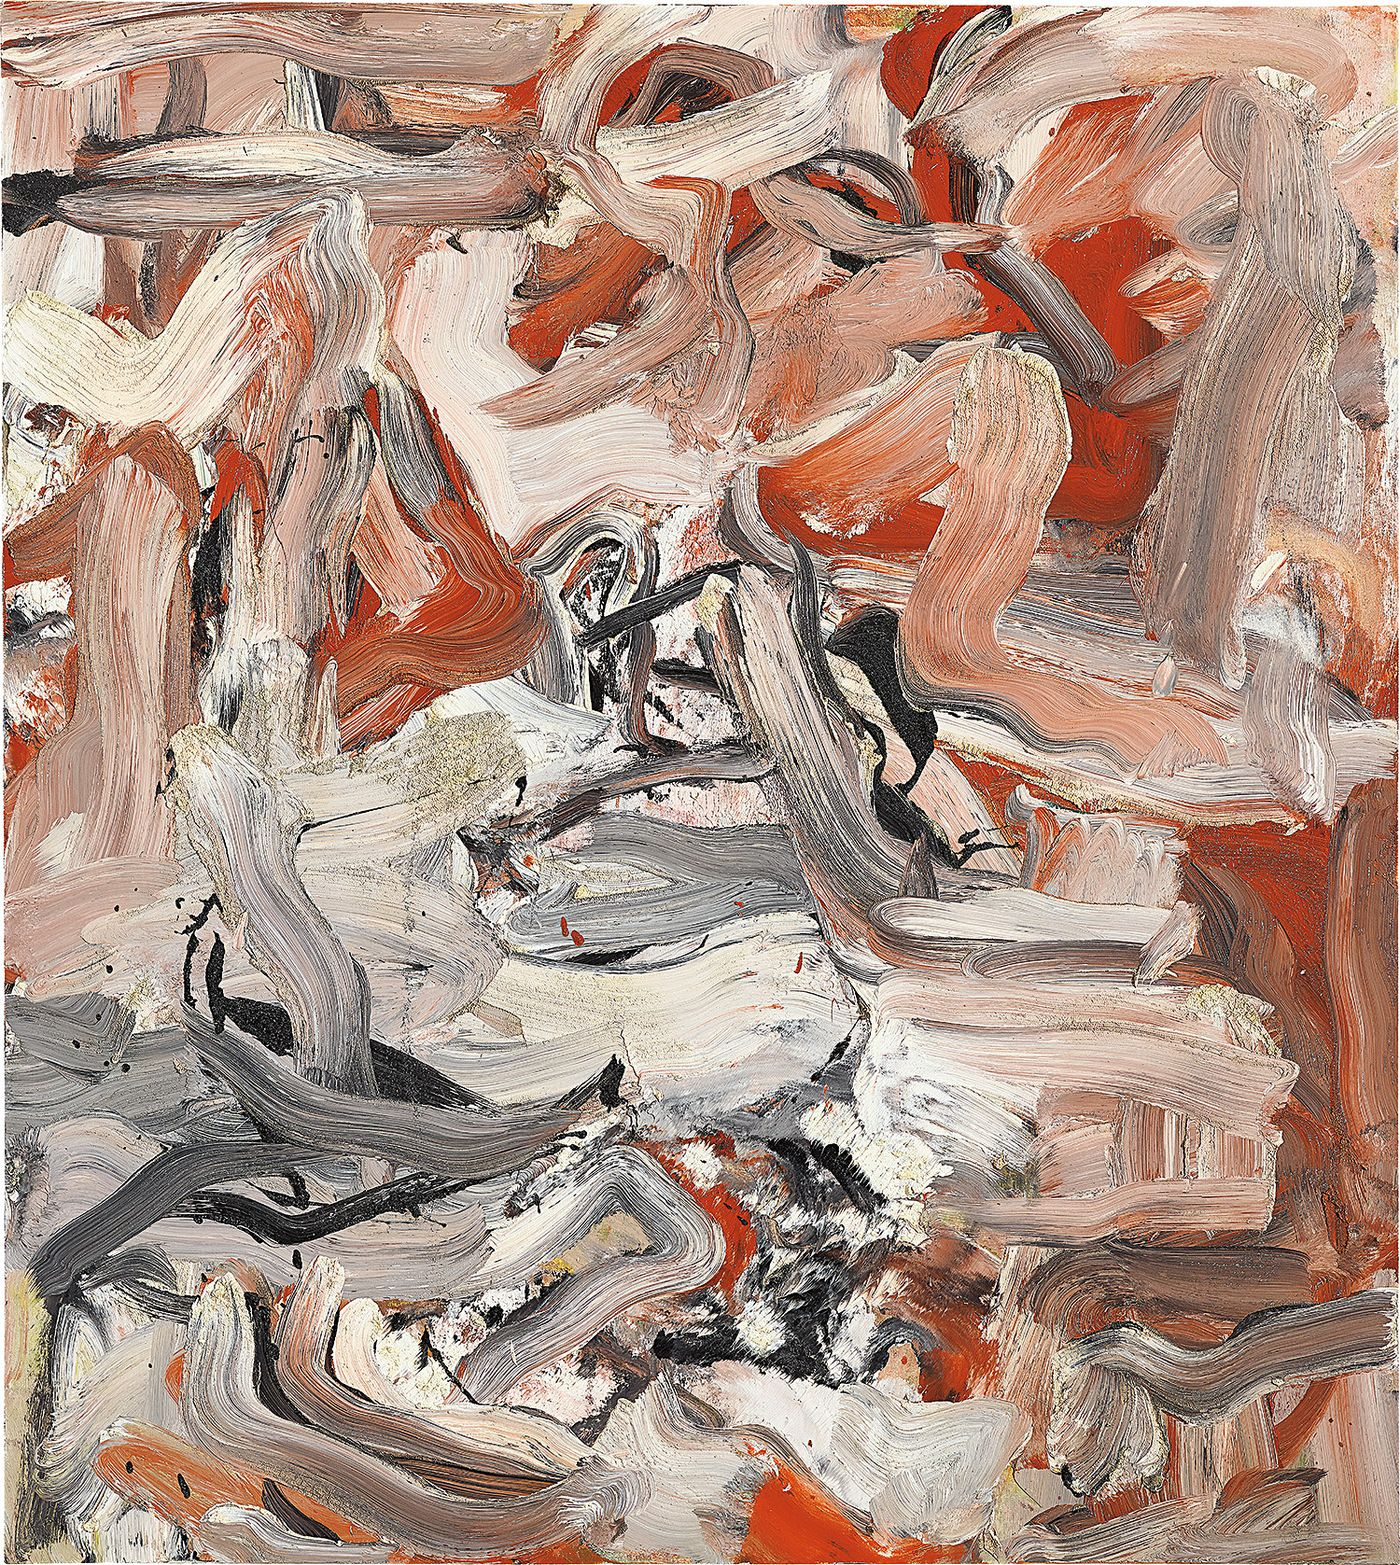 In advance of our New York Evening Sale, we examine a painting by de Kooning at the height of his powers.